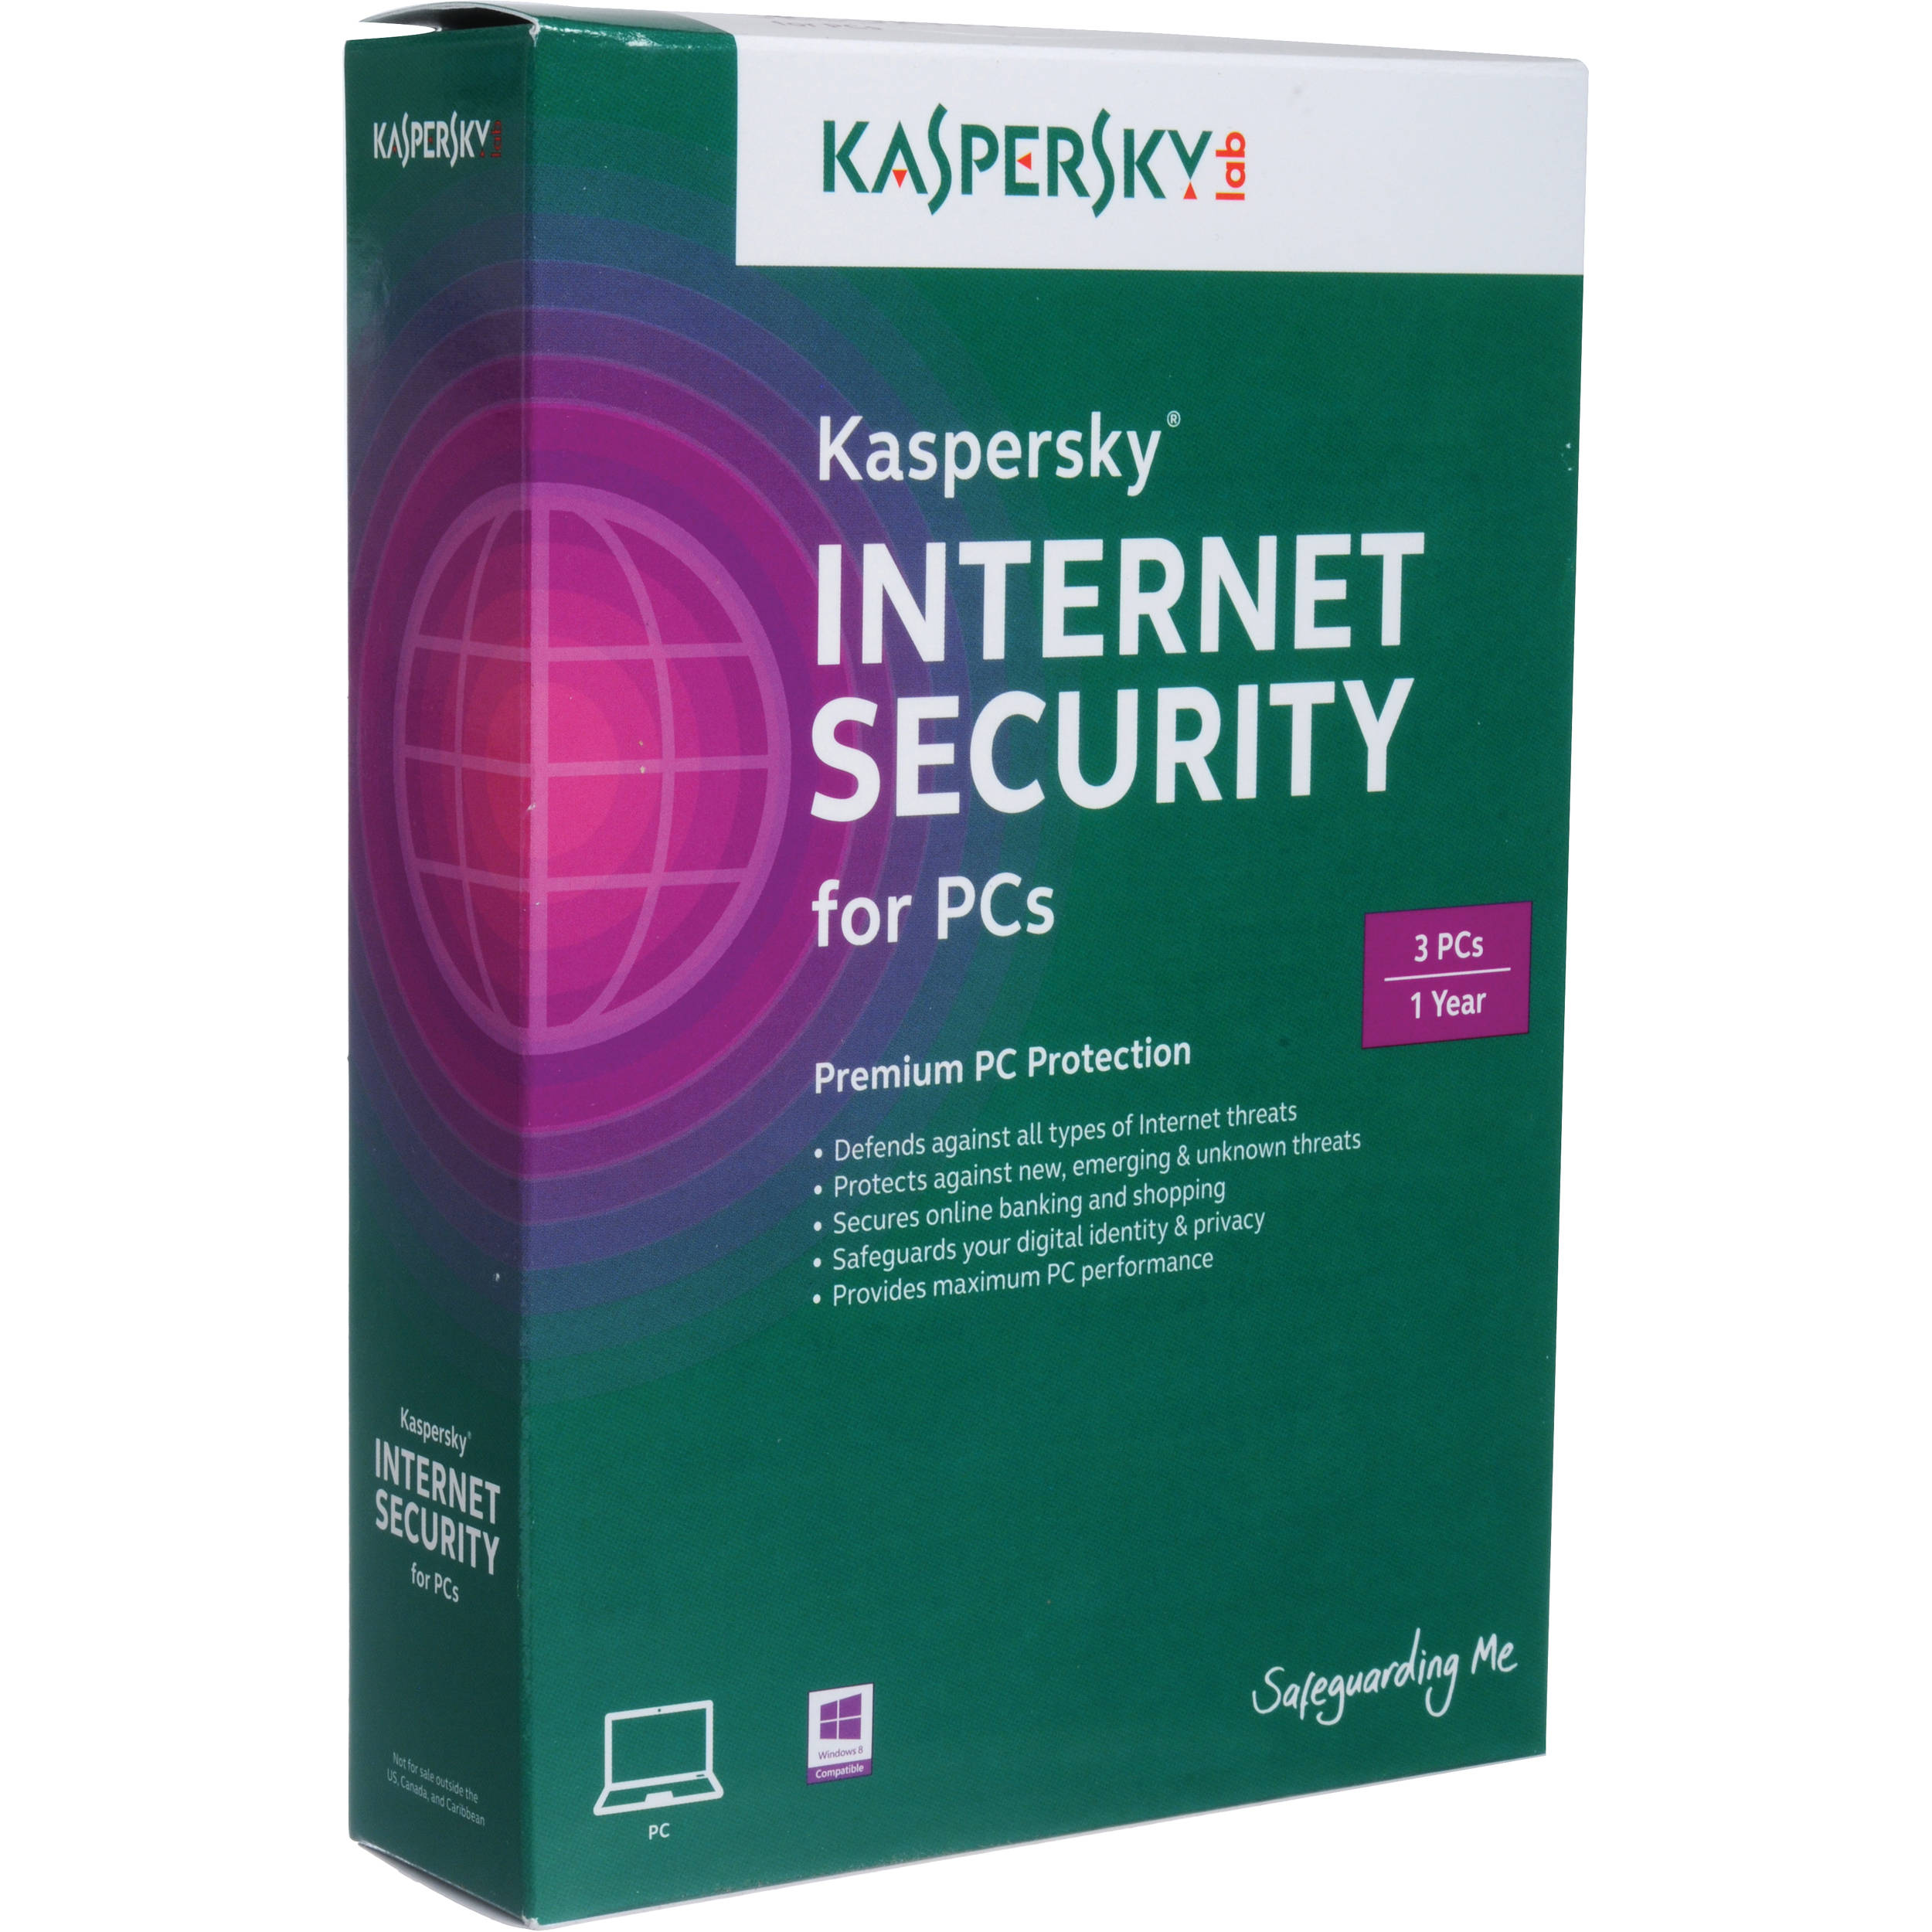 kaspersky internet security 2017 free download for 1 year